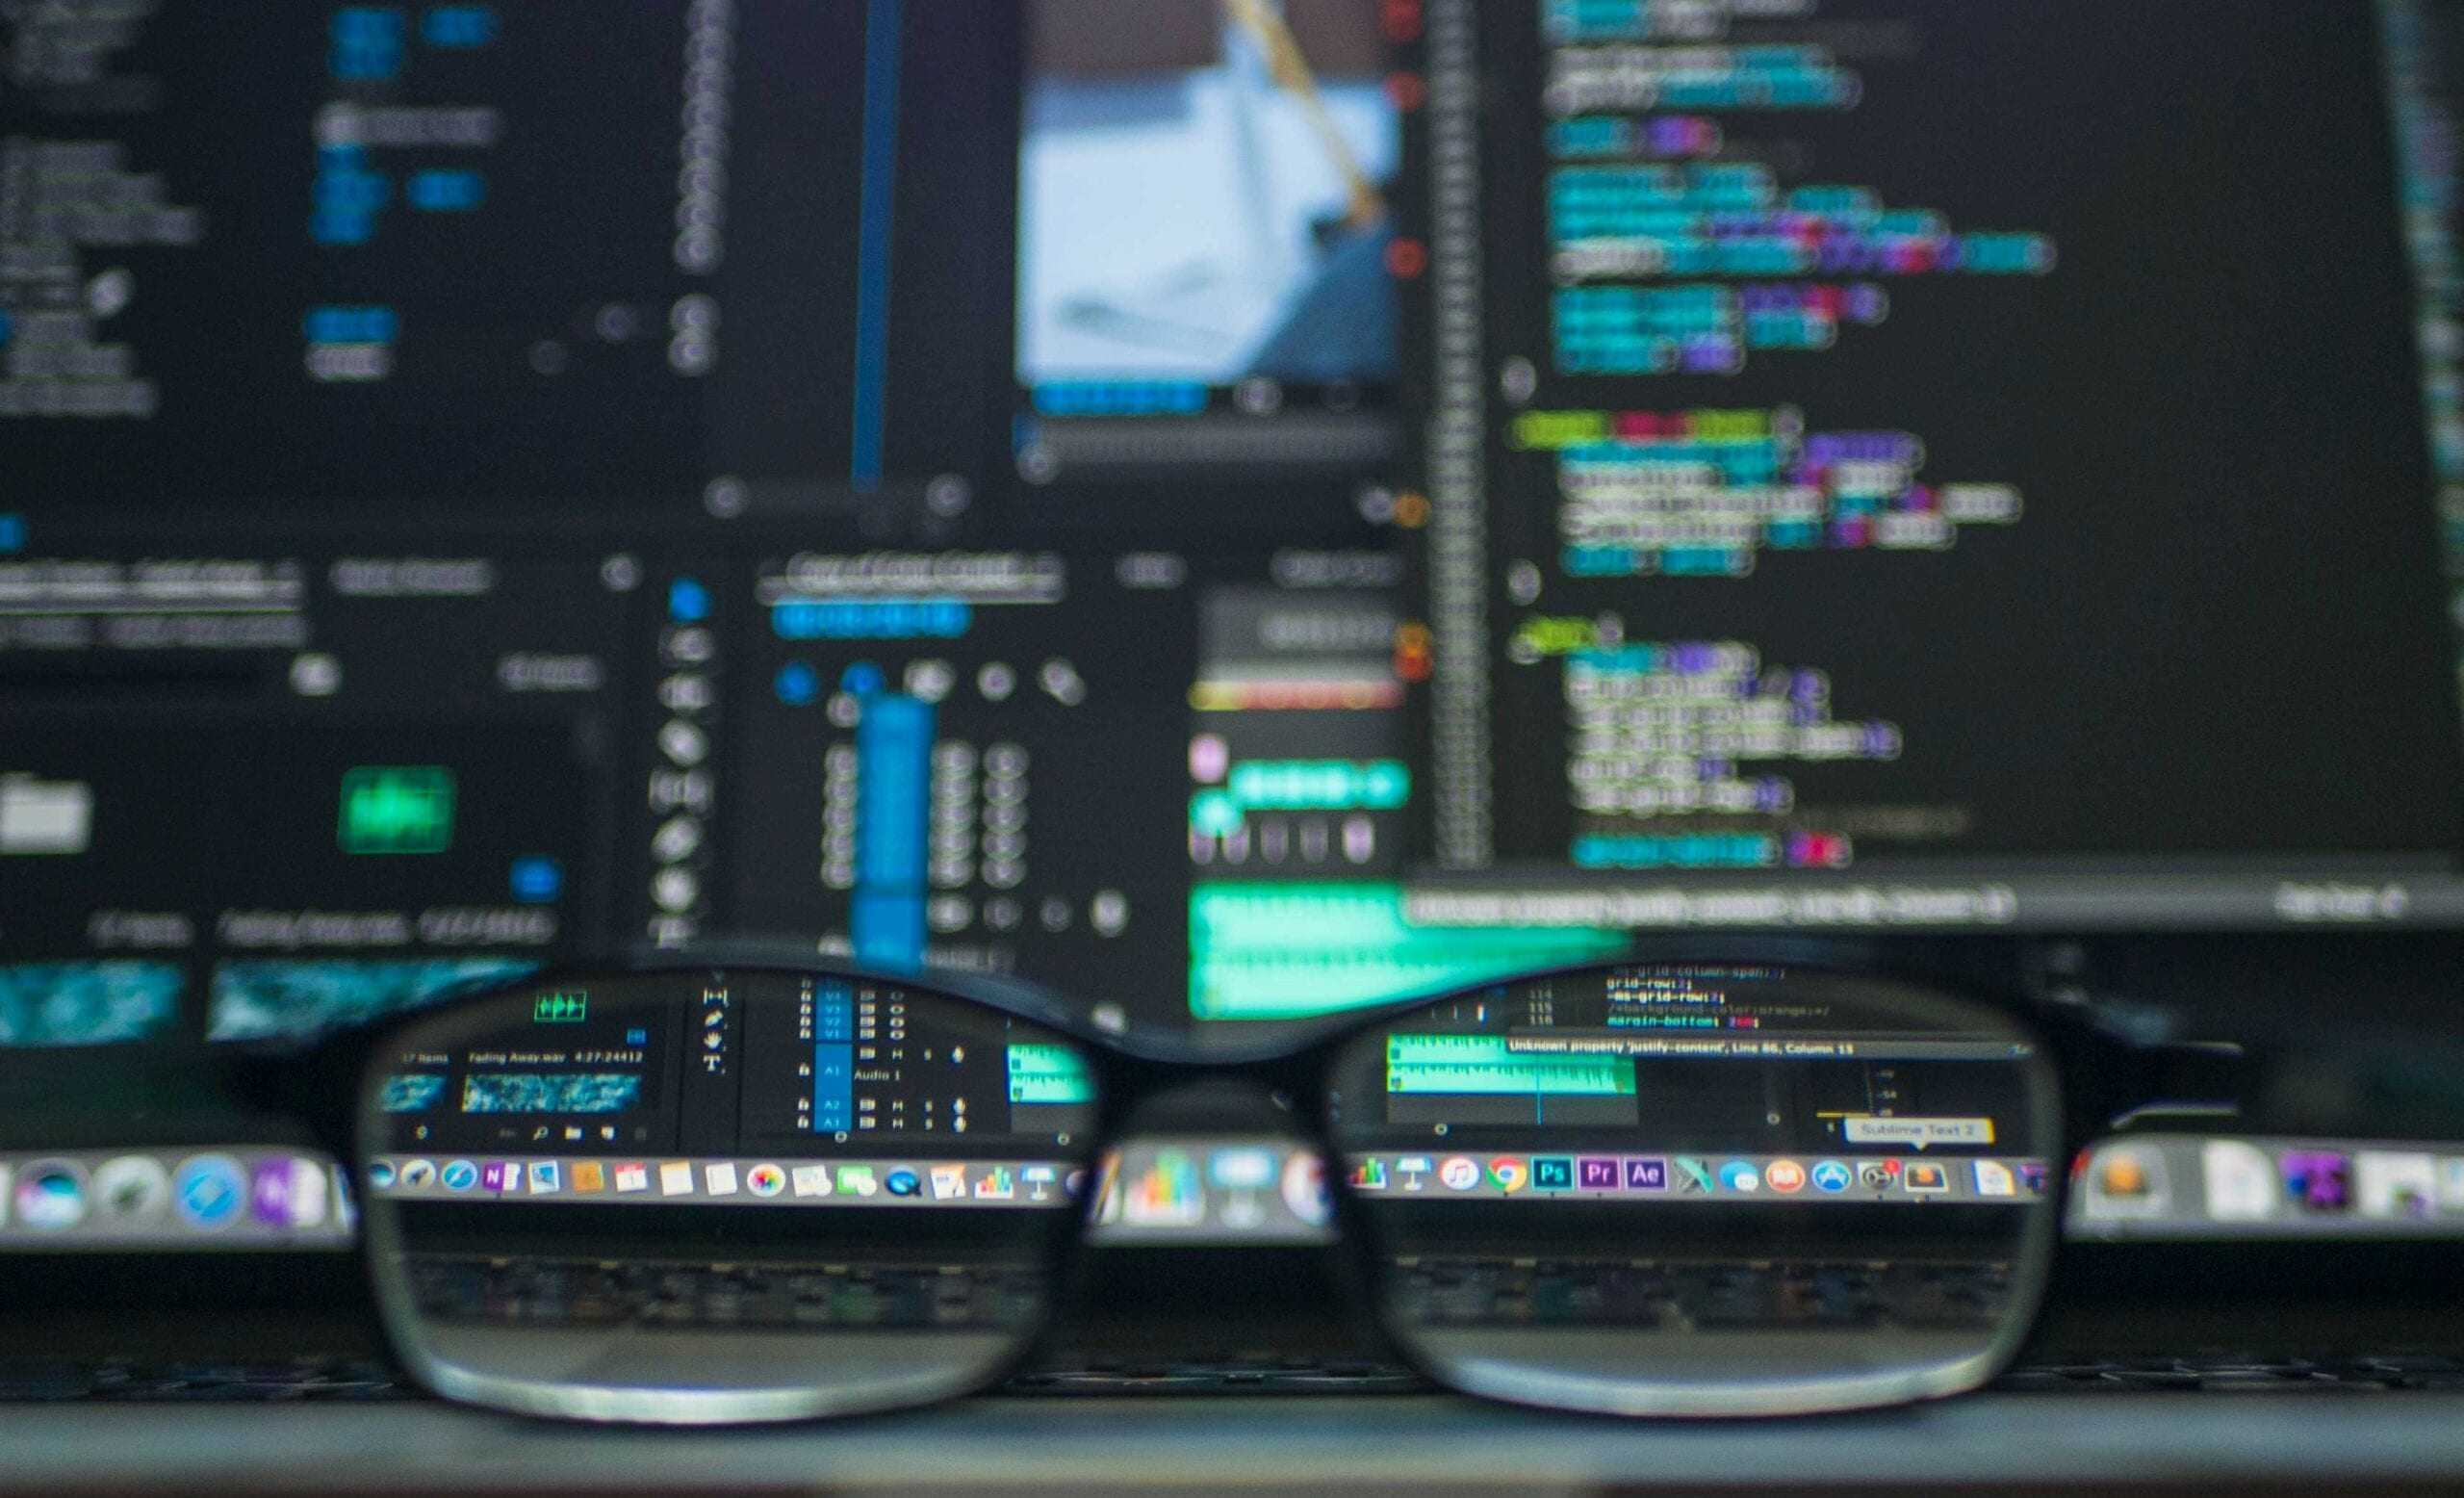 Glasses sitting in front of a screen. The screen has coding on it